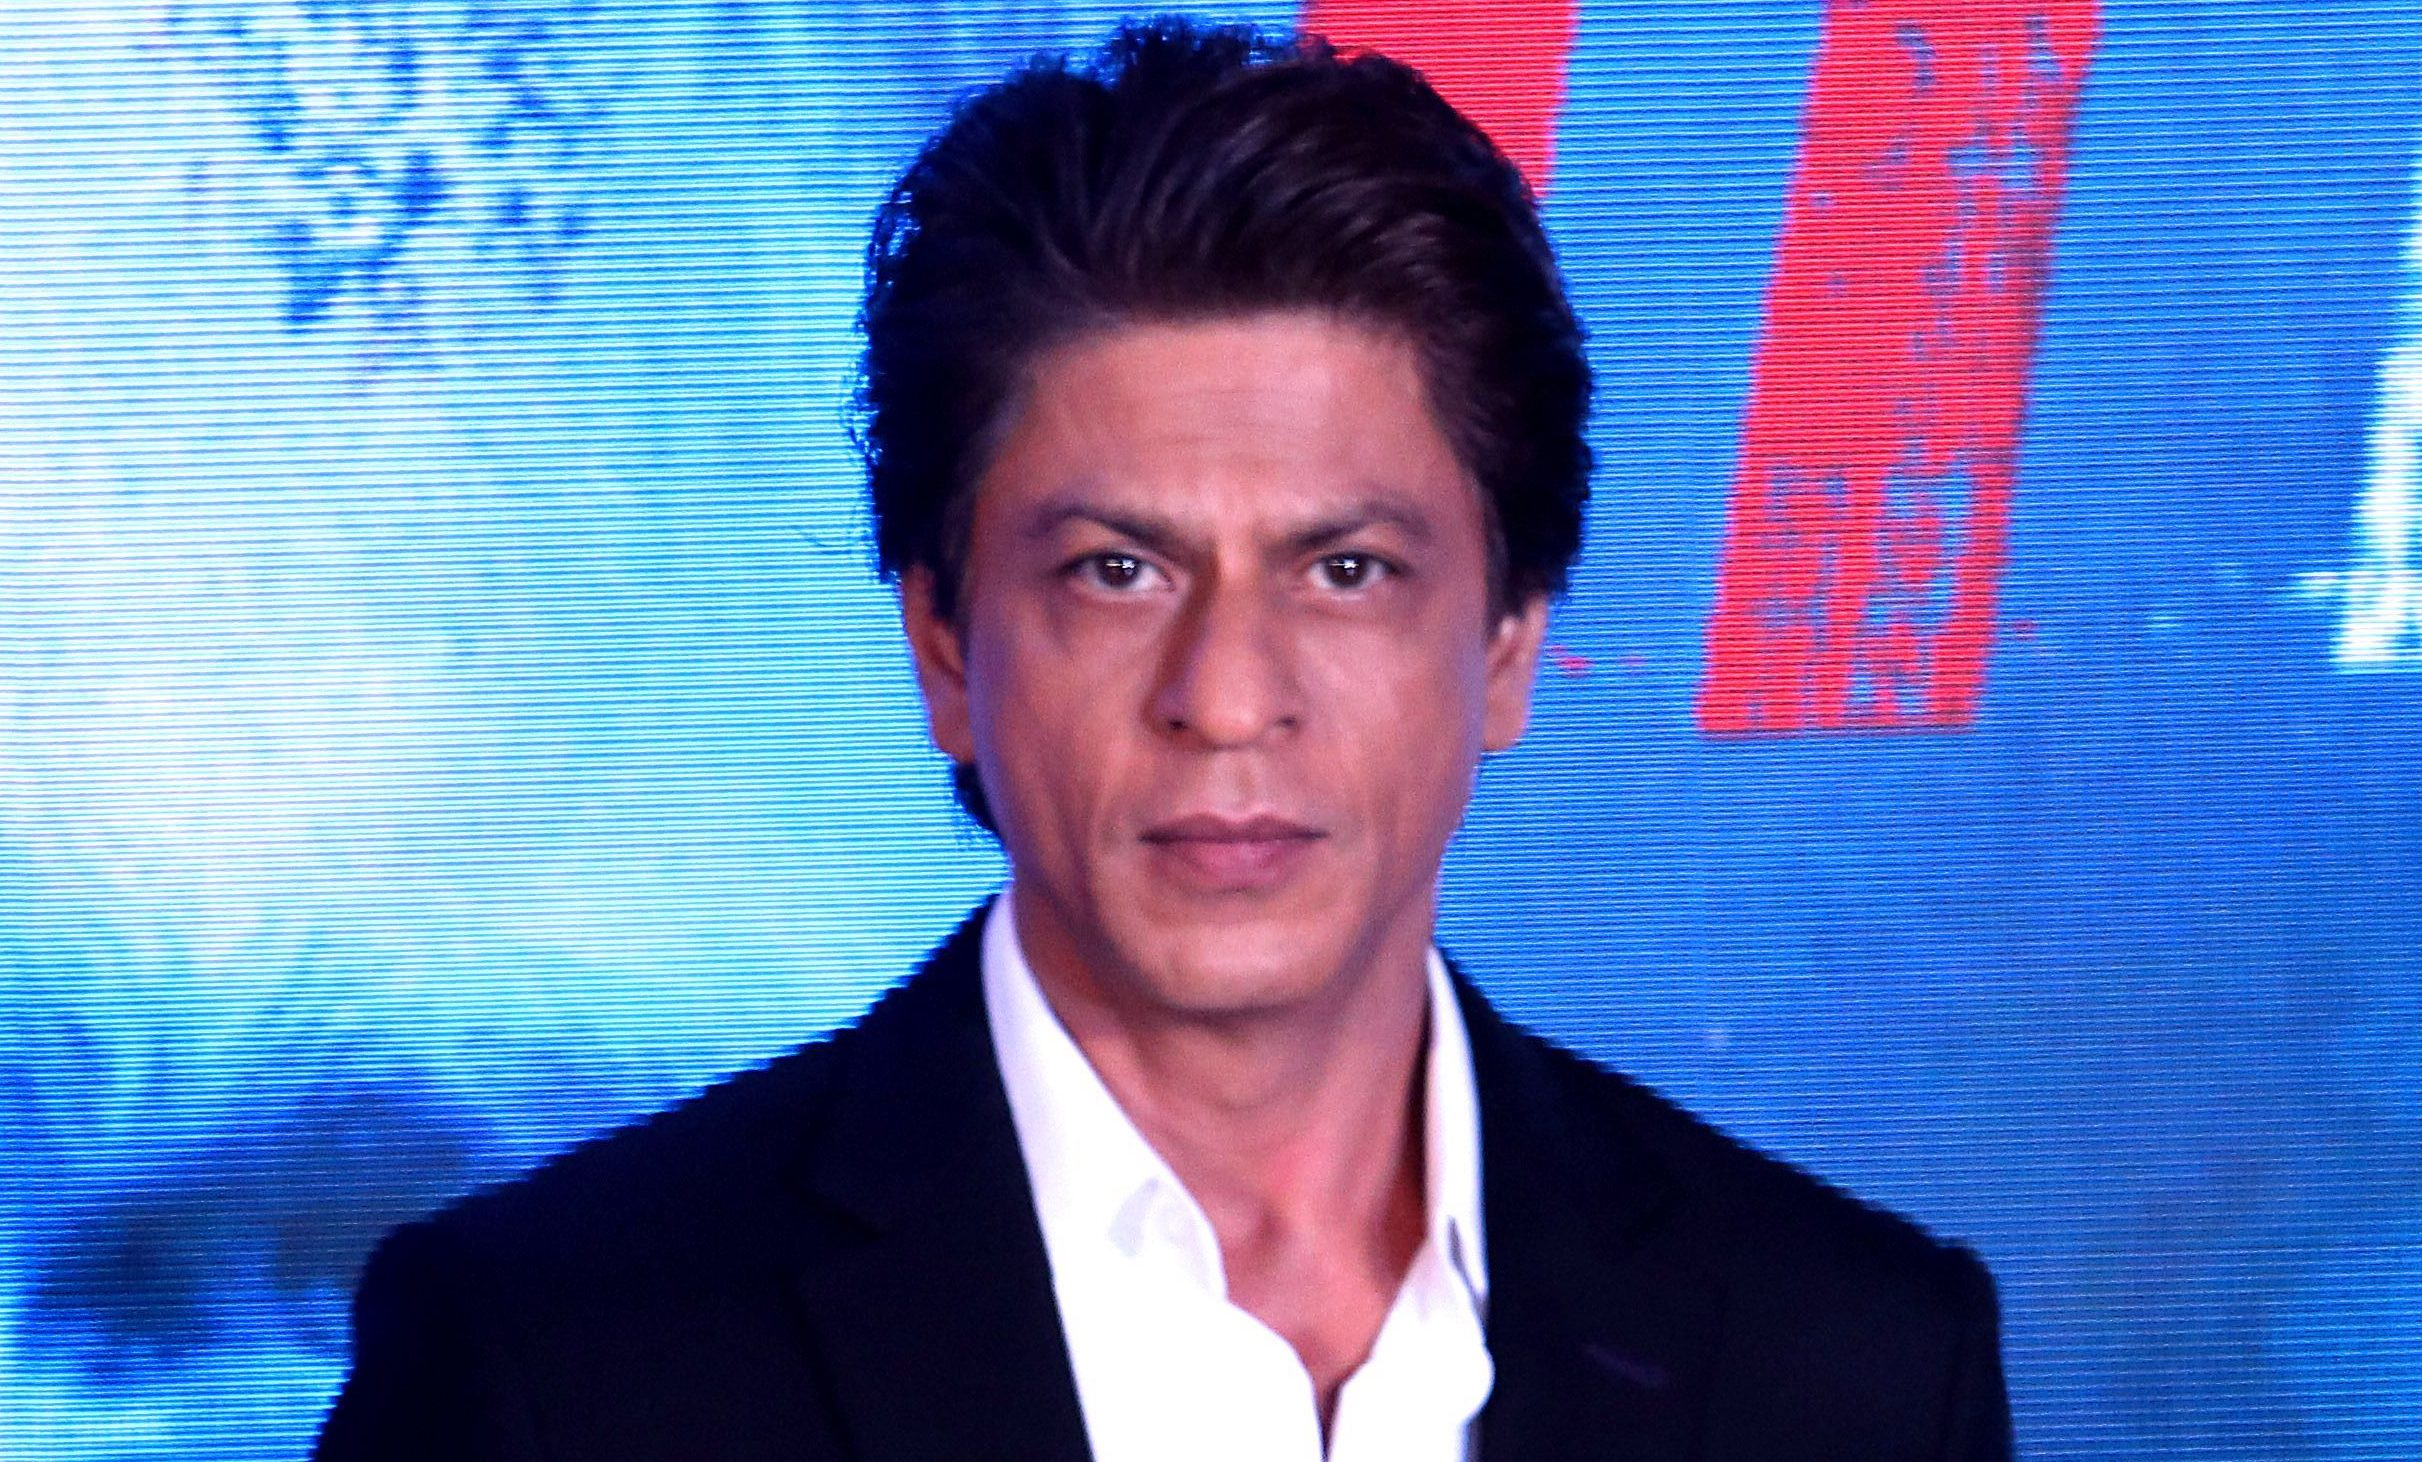 Shah Rukh Khan's Don 3 might not happen after all